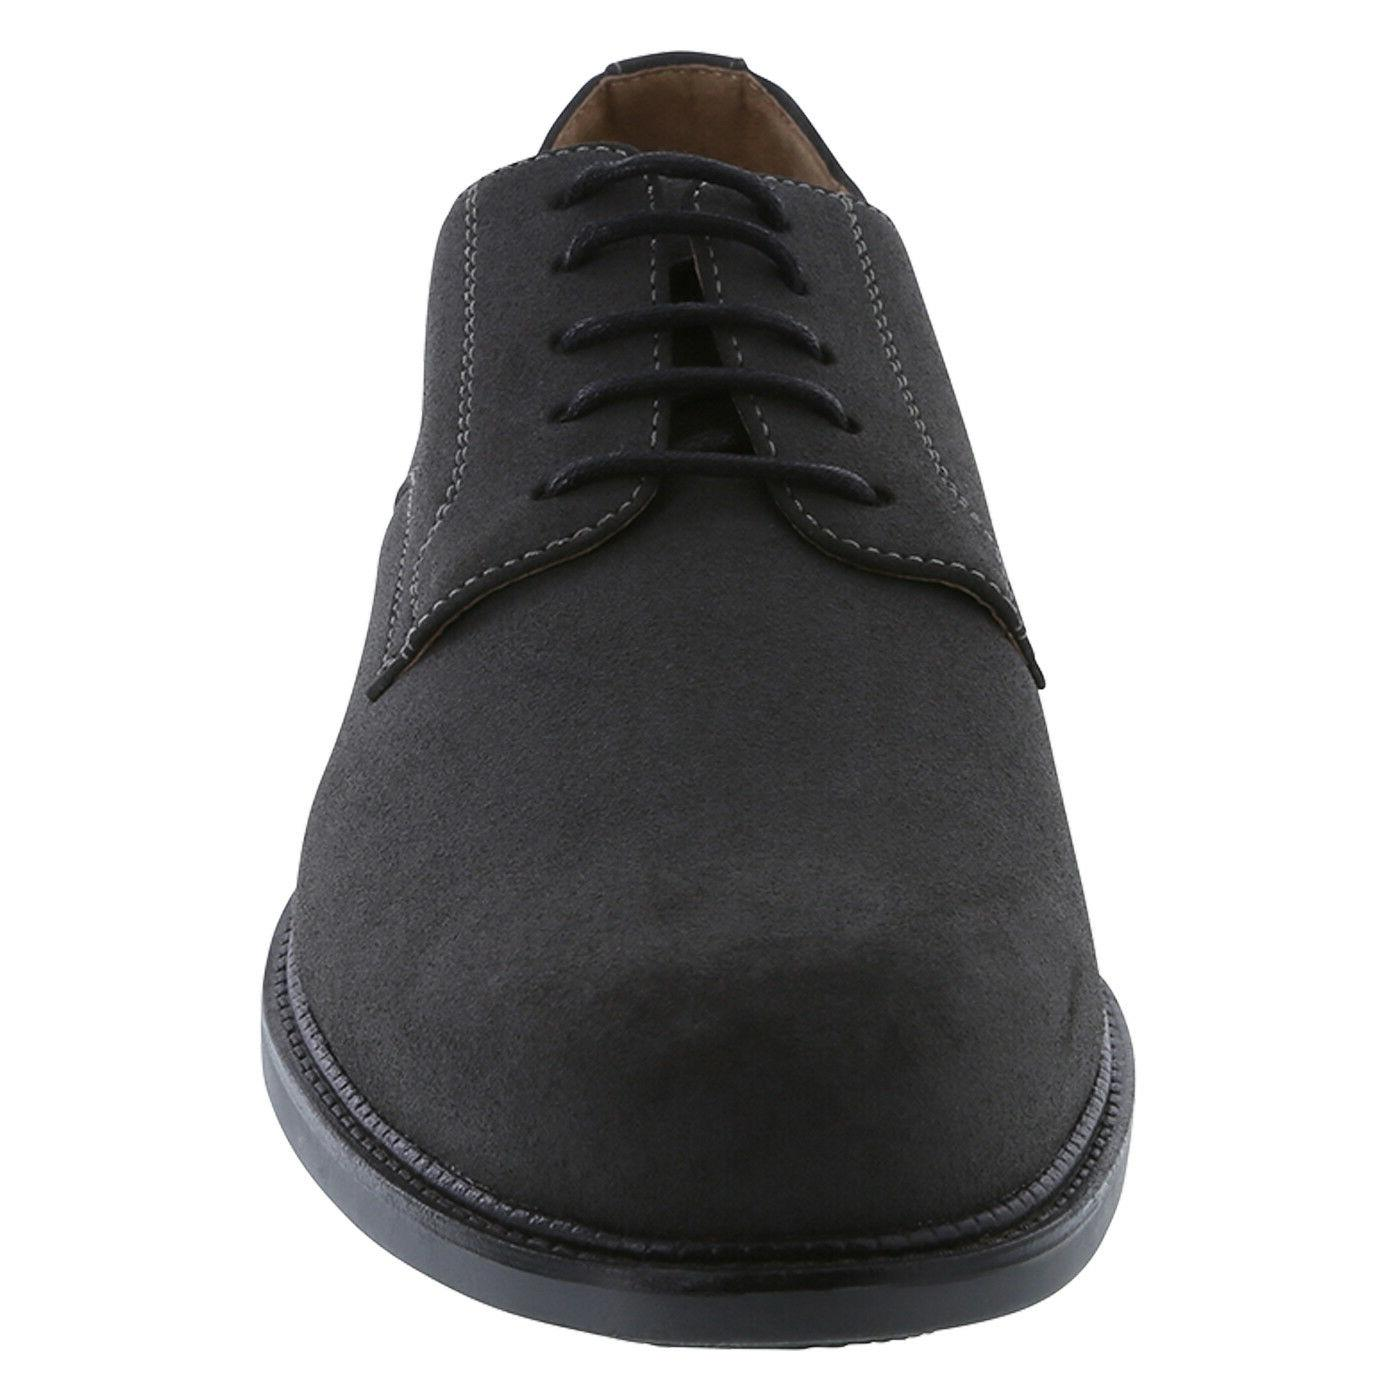 Dexter Men's Chad Oxford Shoes